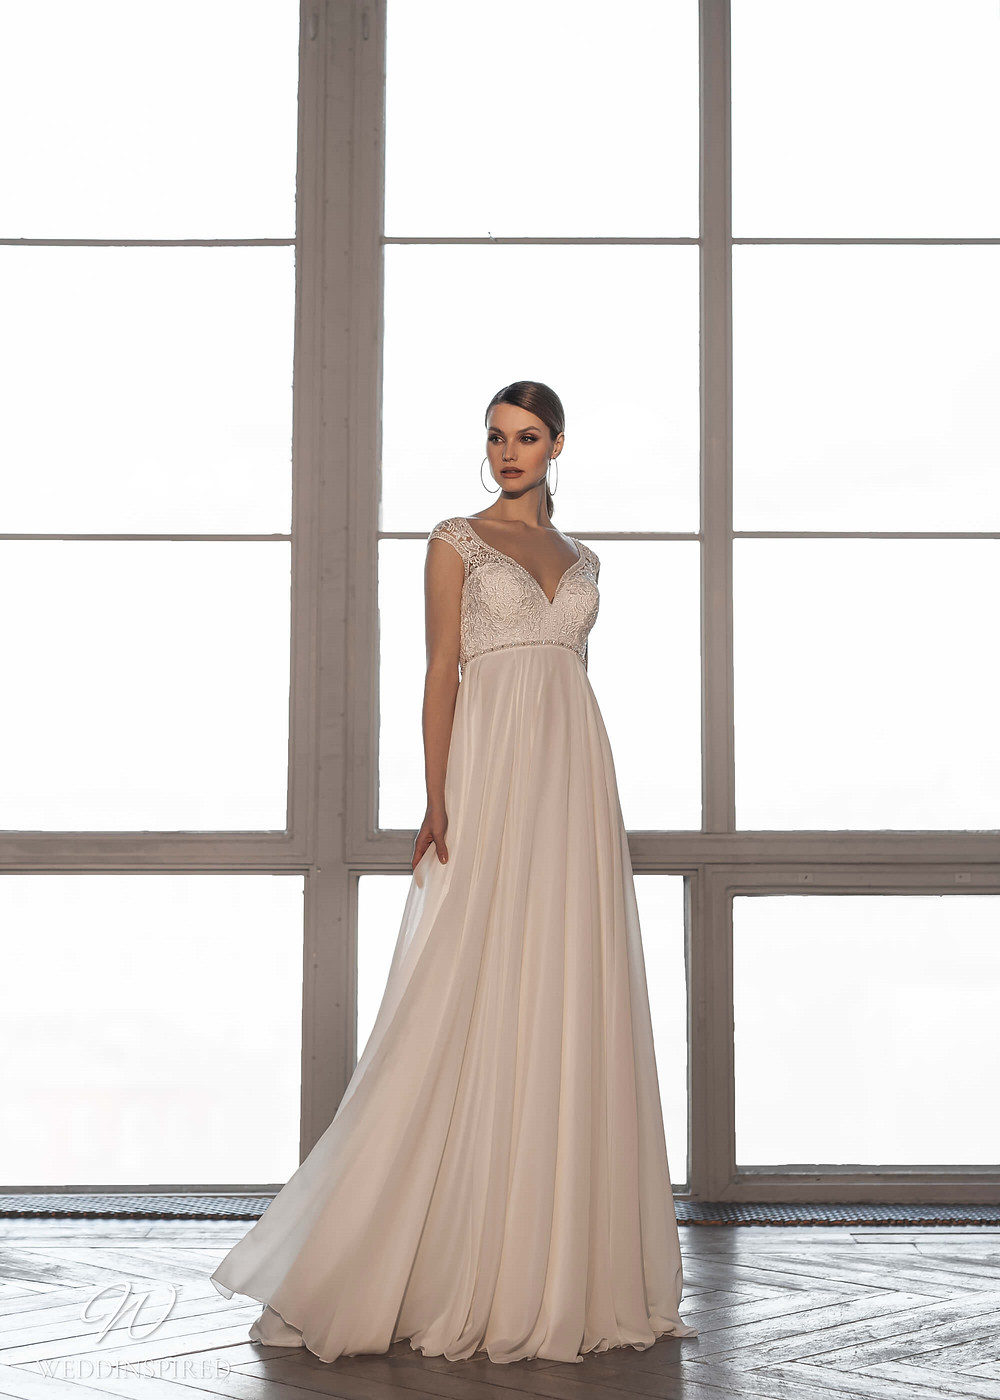 A Naviblue Bridal 2021 blush lace and chiffon romantic empire waist wedding dress